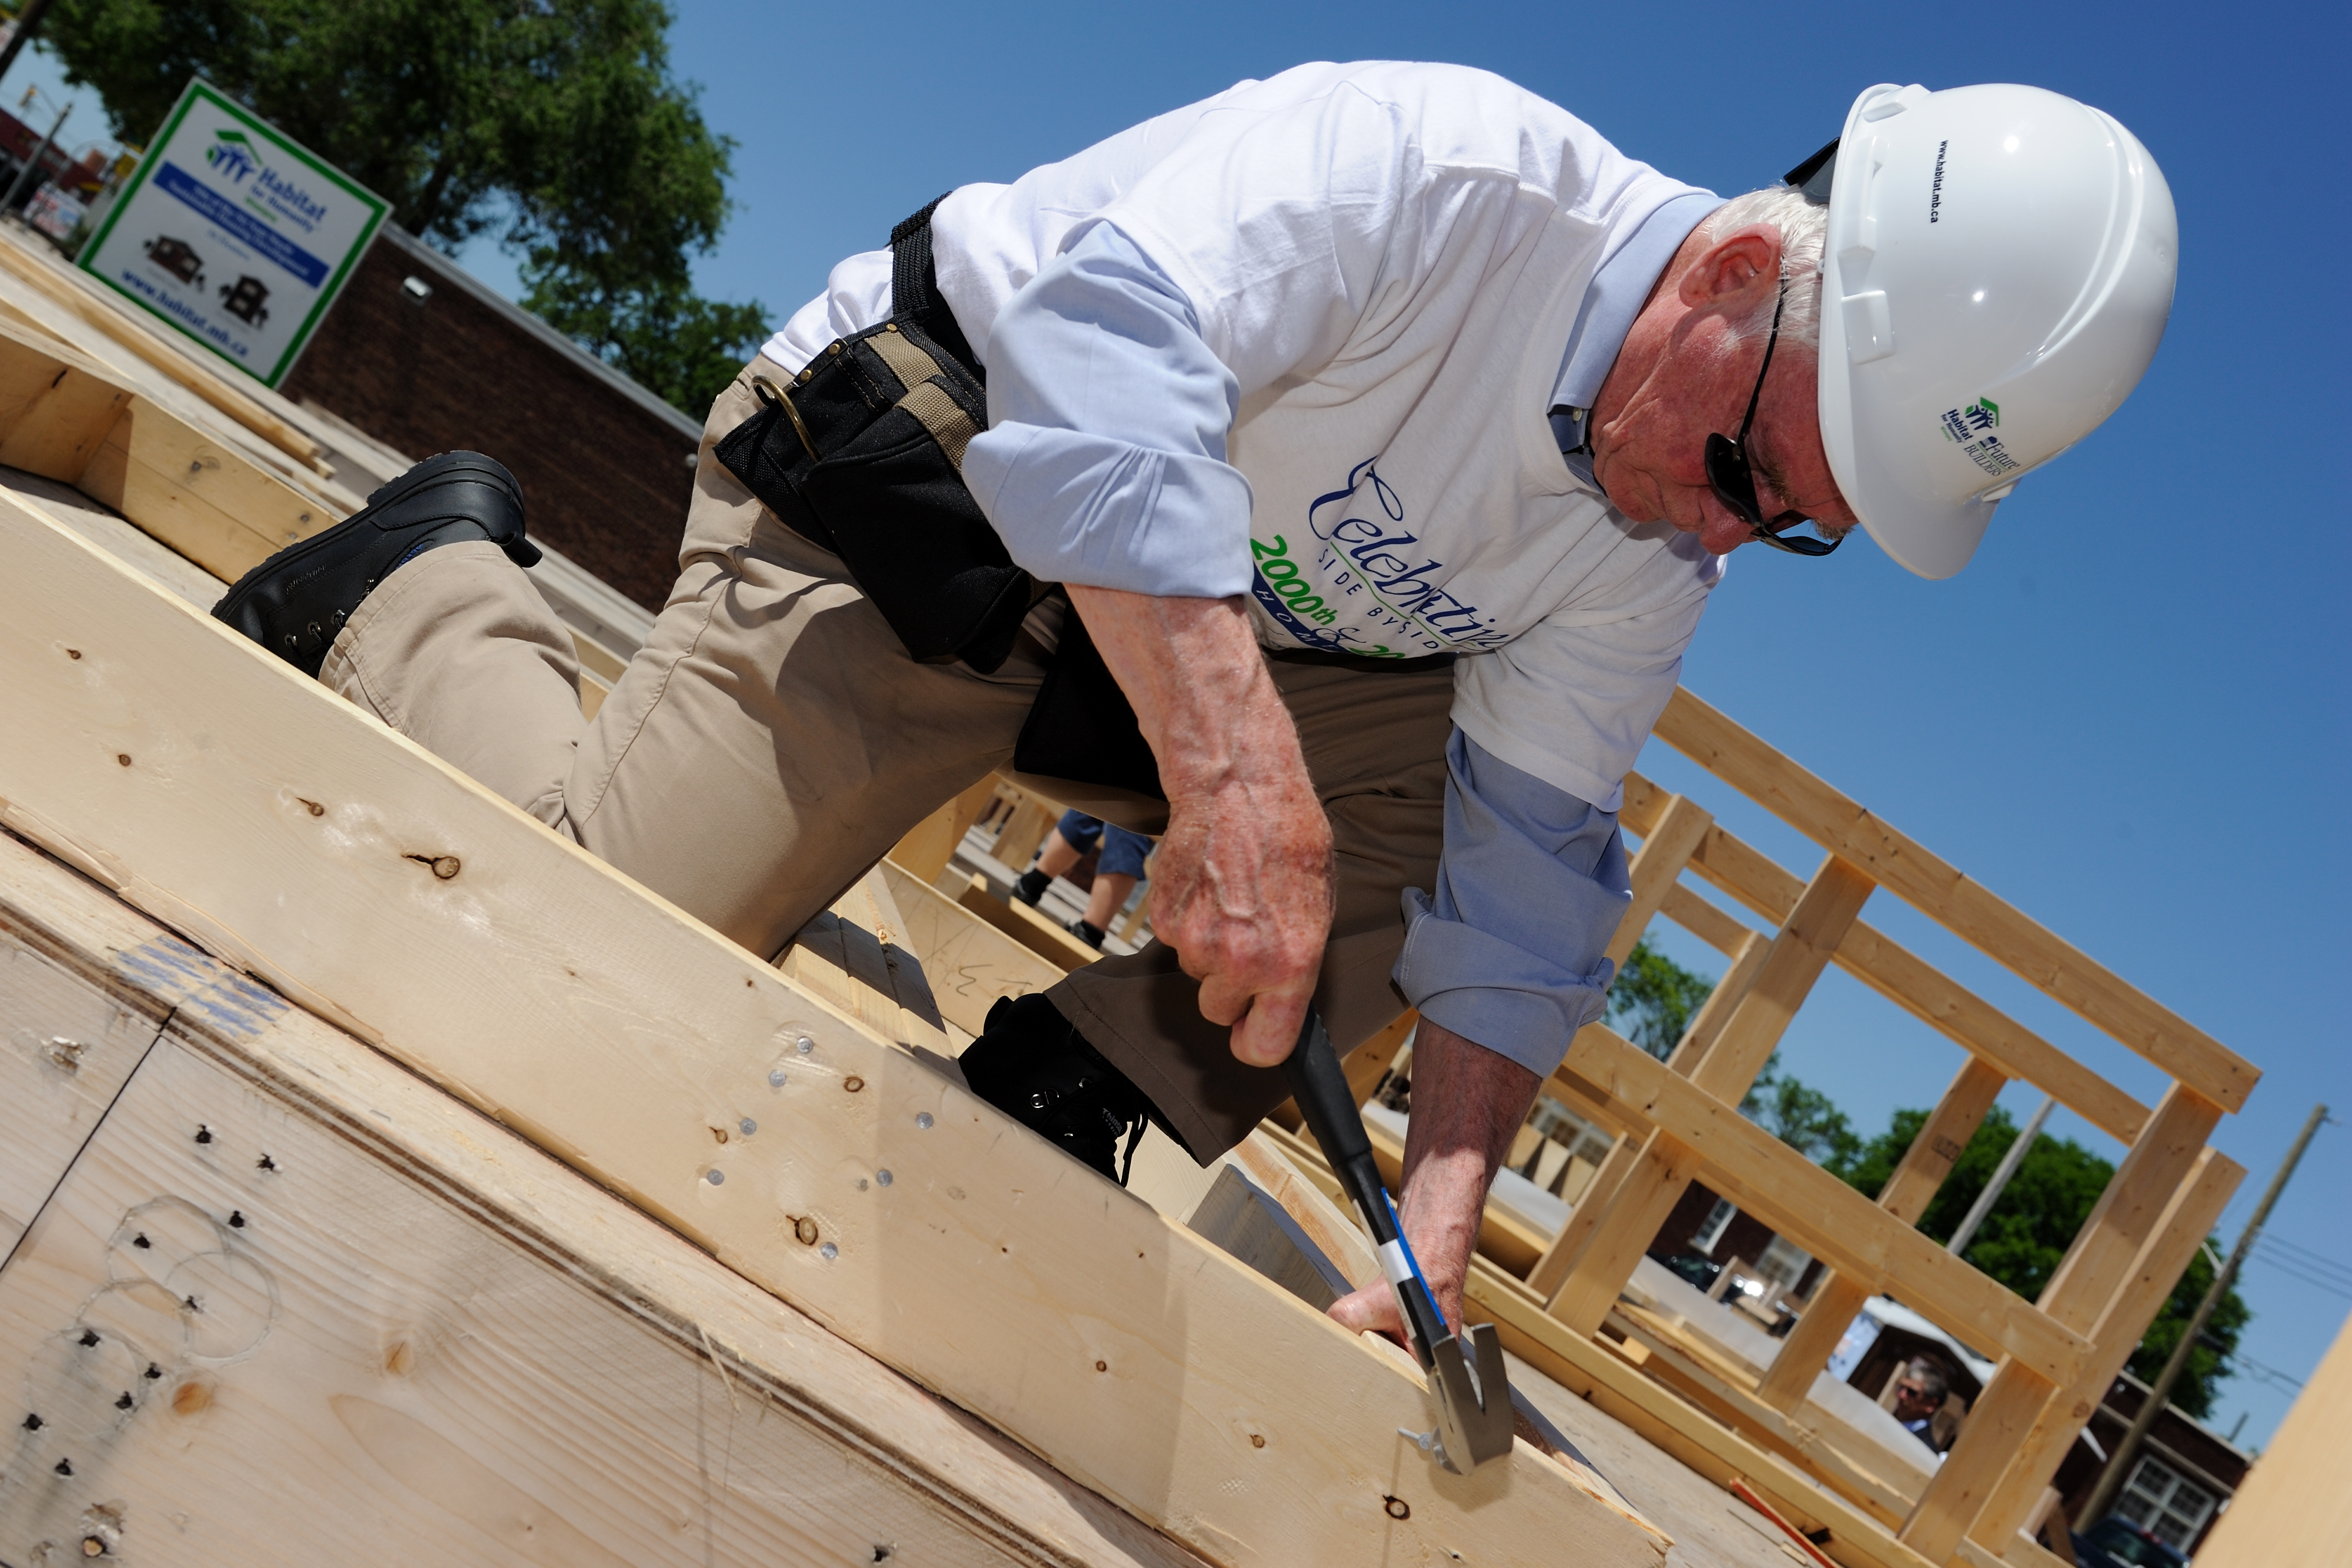 During the last day of the official visit, His Excellency worked with a group of Habitat for Humanity volunteers to help build their 2000th home in Canada and their 200th home in Winnipeg.